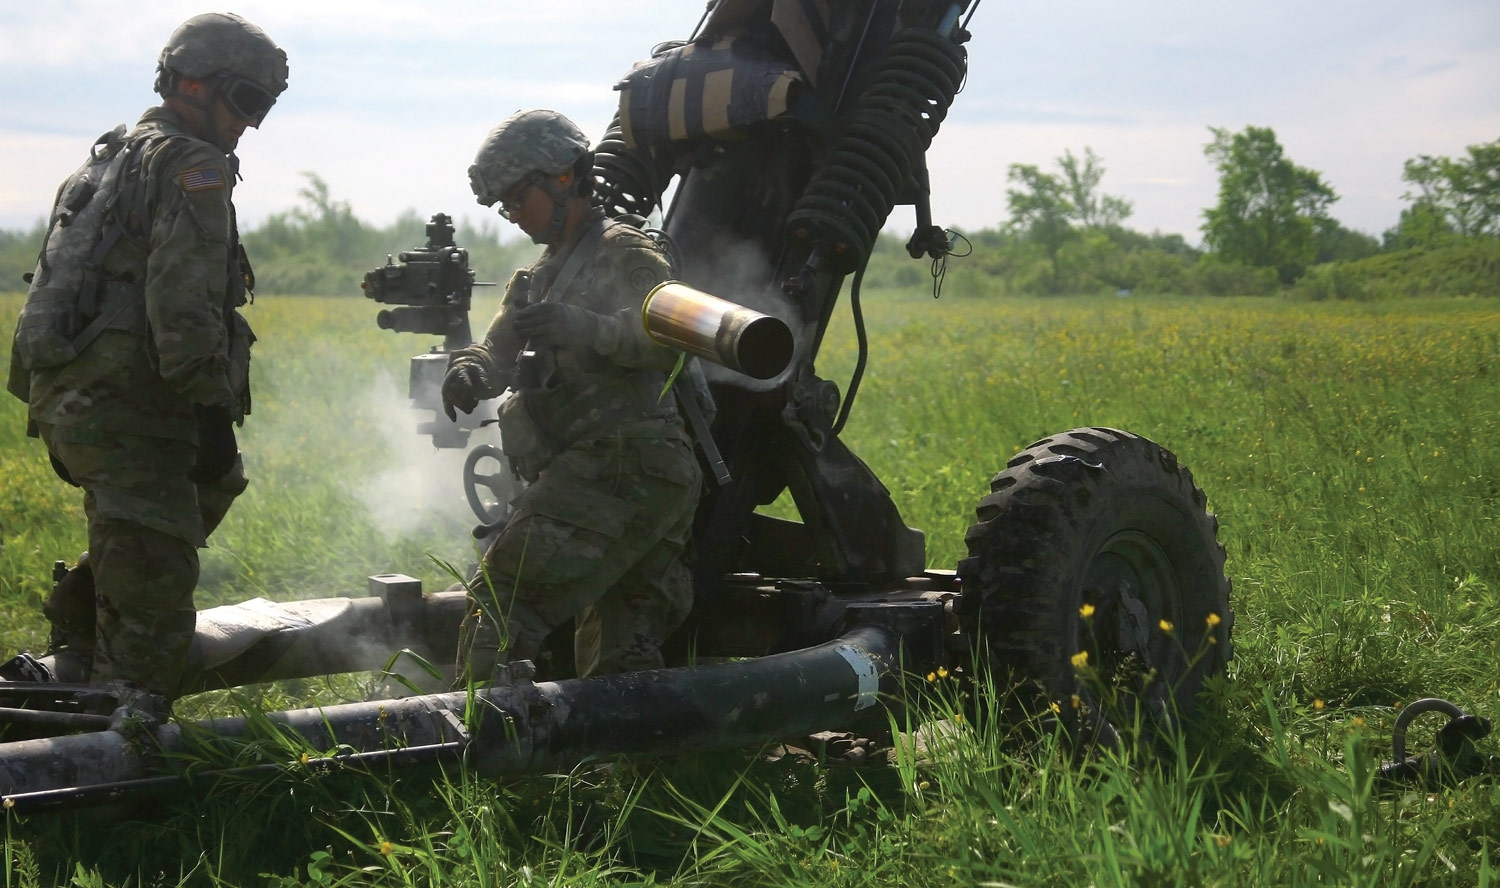 U.S. Soldiers assigned to Alpha Battery, 1st Battalion, 258th Artillery Regiment, 27th Infantry Brigade Combat Team, New York Army National Guard, man an M119A2 Howitzer during a notional air assault artillery raid where Soldiers engaged a simulated enemy target at Fort Drum, N.Y. New York Army National Guard photo by SGT Alexander Rector